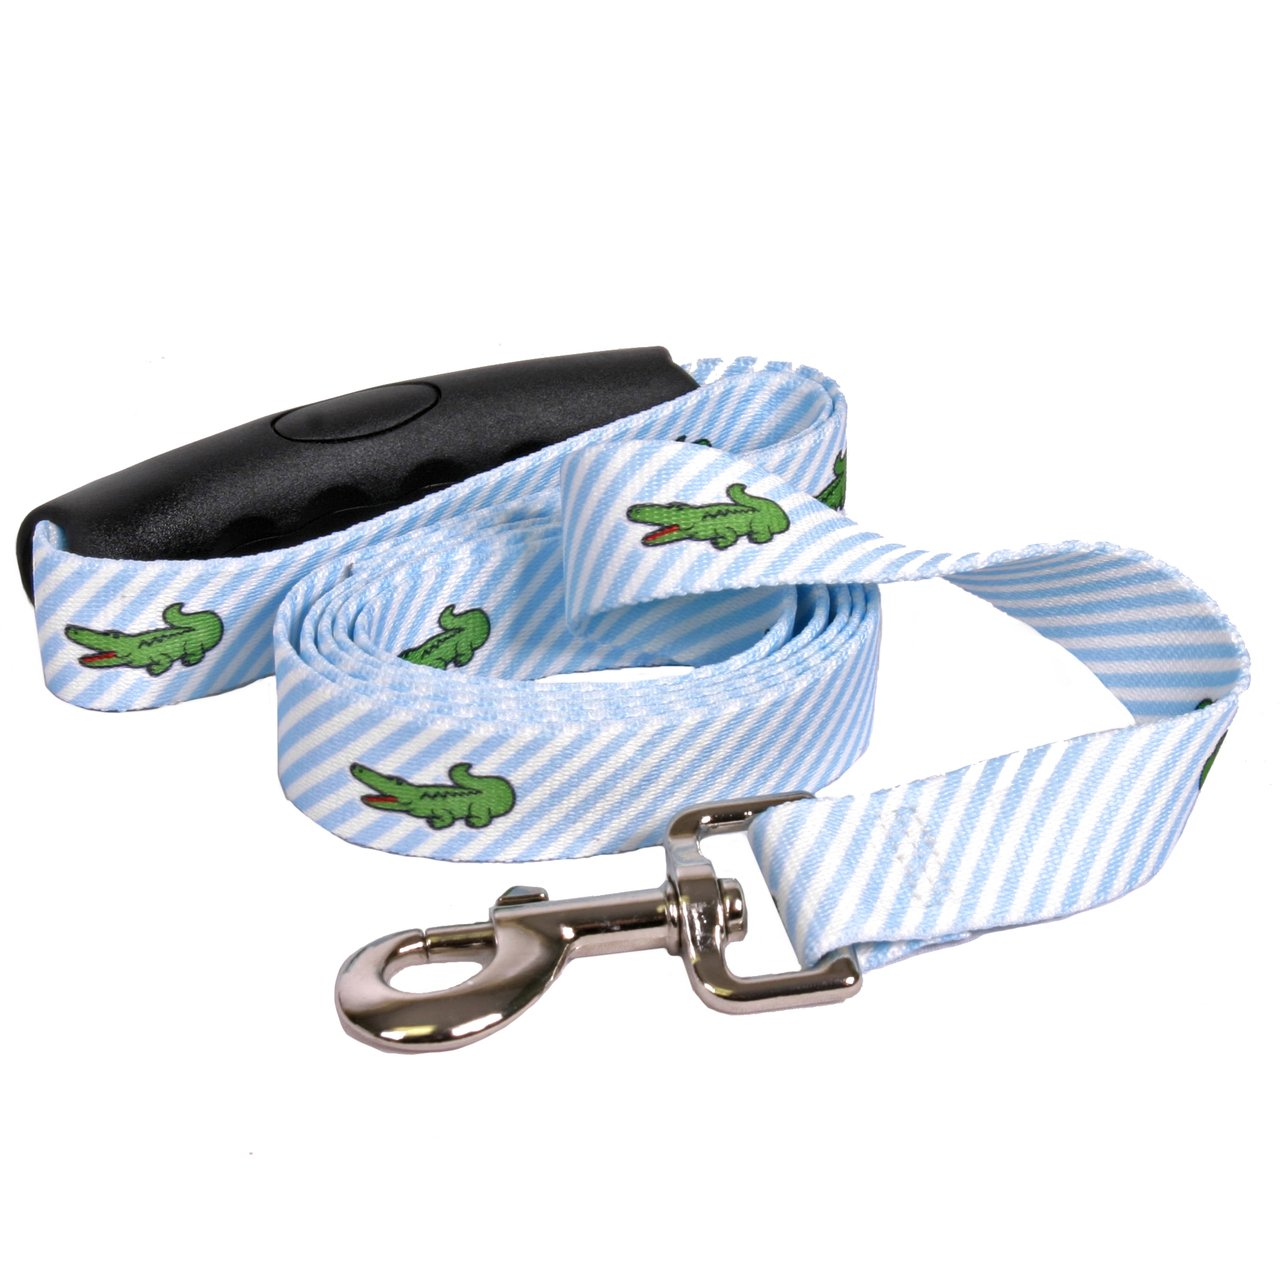 Yellow Dog Design Dawg Seersucker Blue with Alligators Dog Leash with Comfort Grip Handle-Large-1'' 5' x 60'' Made in the USA by